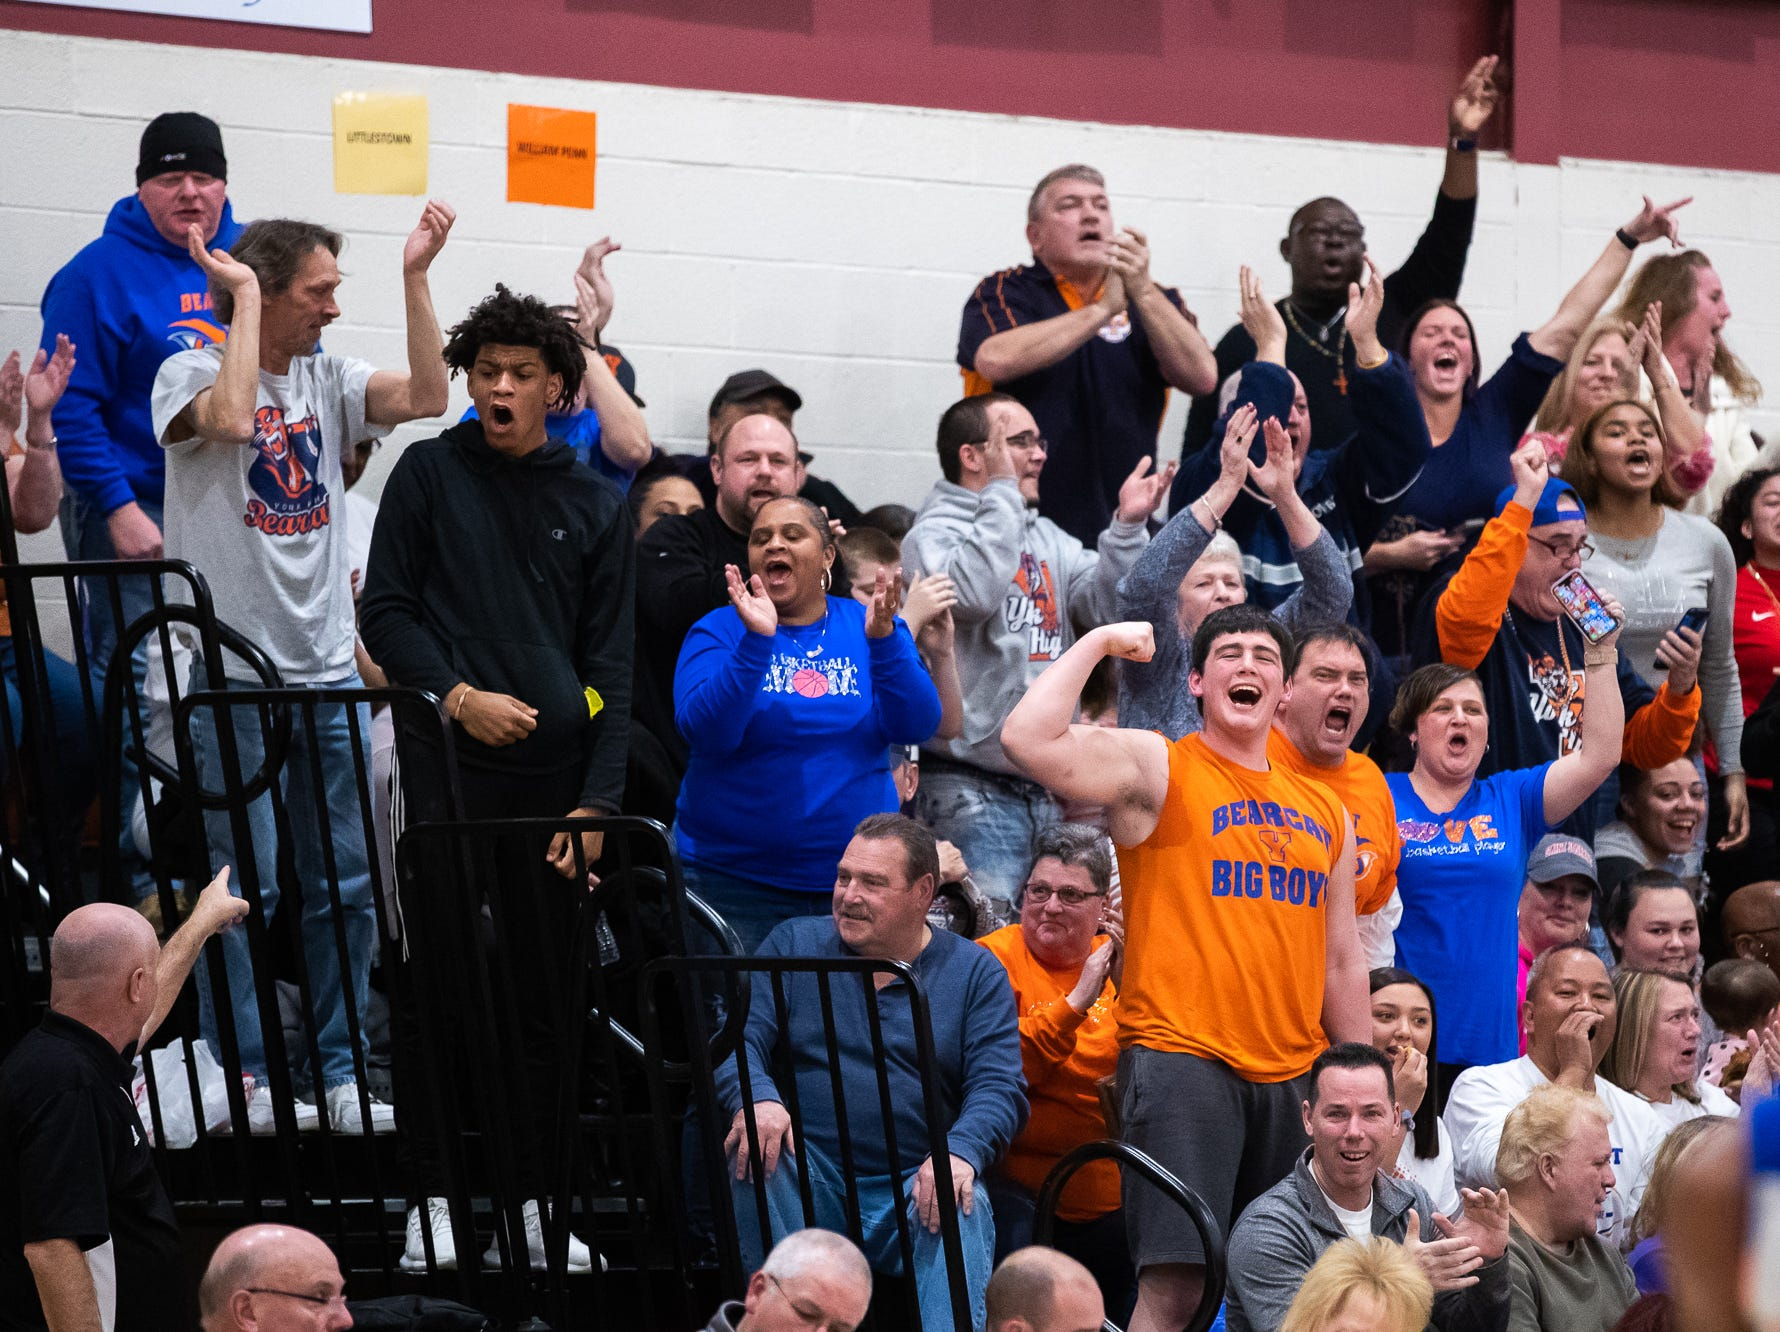 York High's fan section cheers during the first half of a YAIAA quarterfinal between York High and Dover, Saturday, Feb. 9, 2019, at Central York High School. West York led Dover 48-35 at the half.